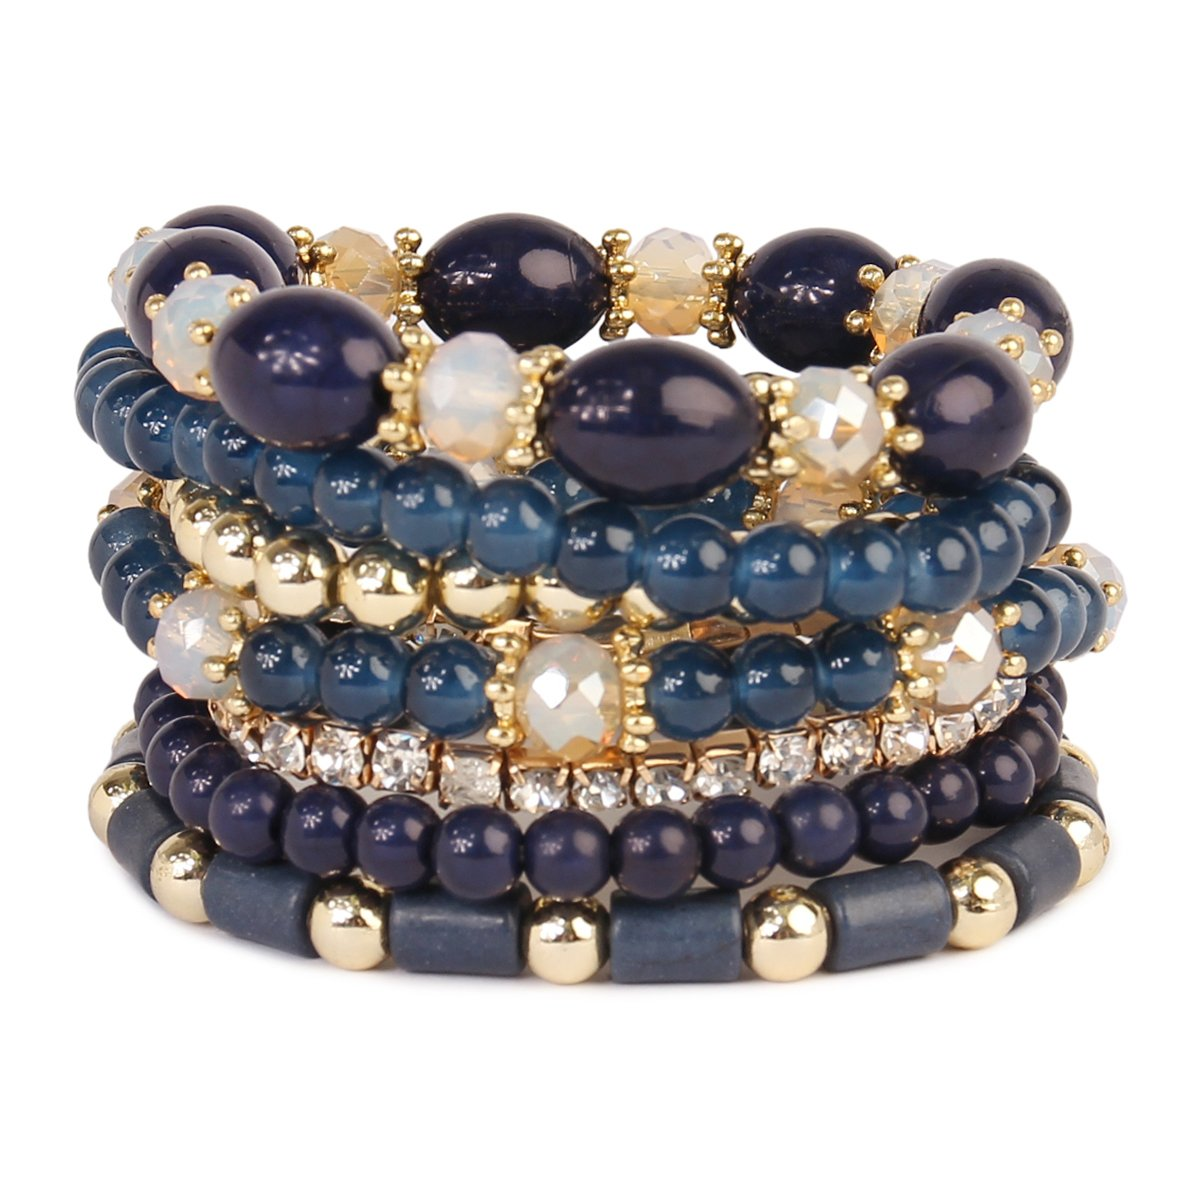 MYS Collection RIAH FASHION Multi Strand Bead Layering Statement Bracelets - Colorful Beaded Strand Stretch Bangles (Navy)